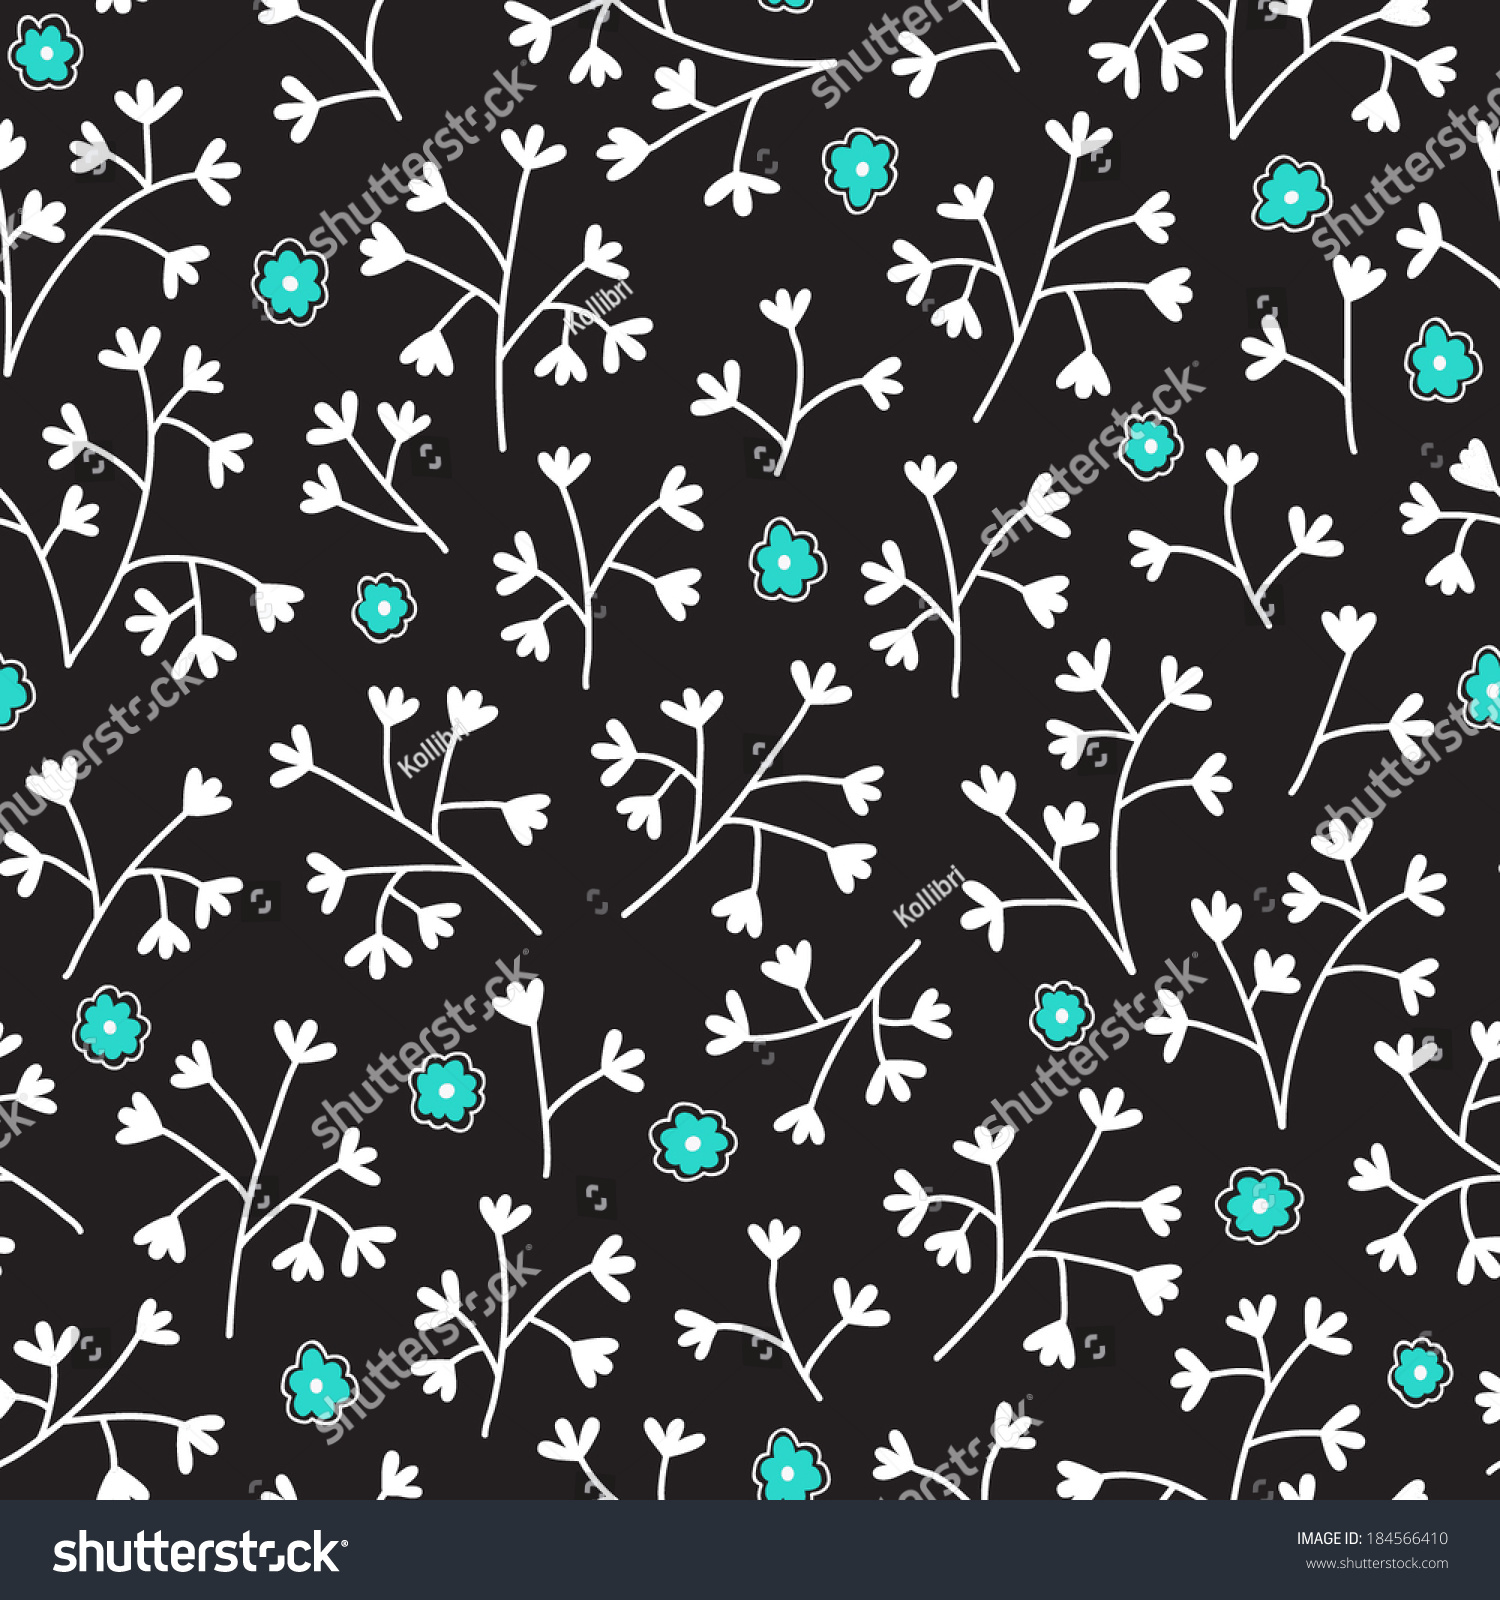 Seamless Floral Pattern Small Flowers Endless Lager-vektor